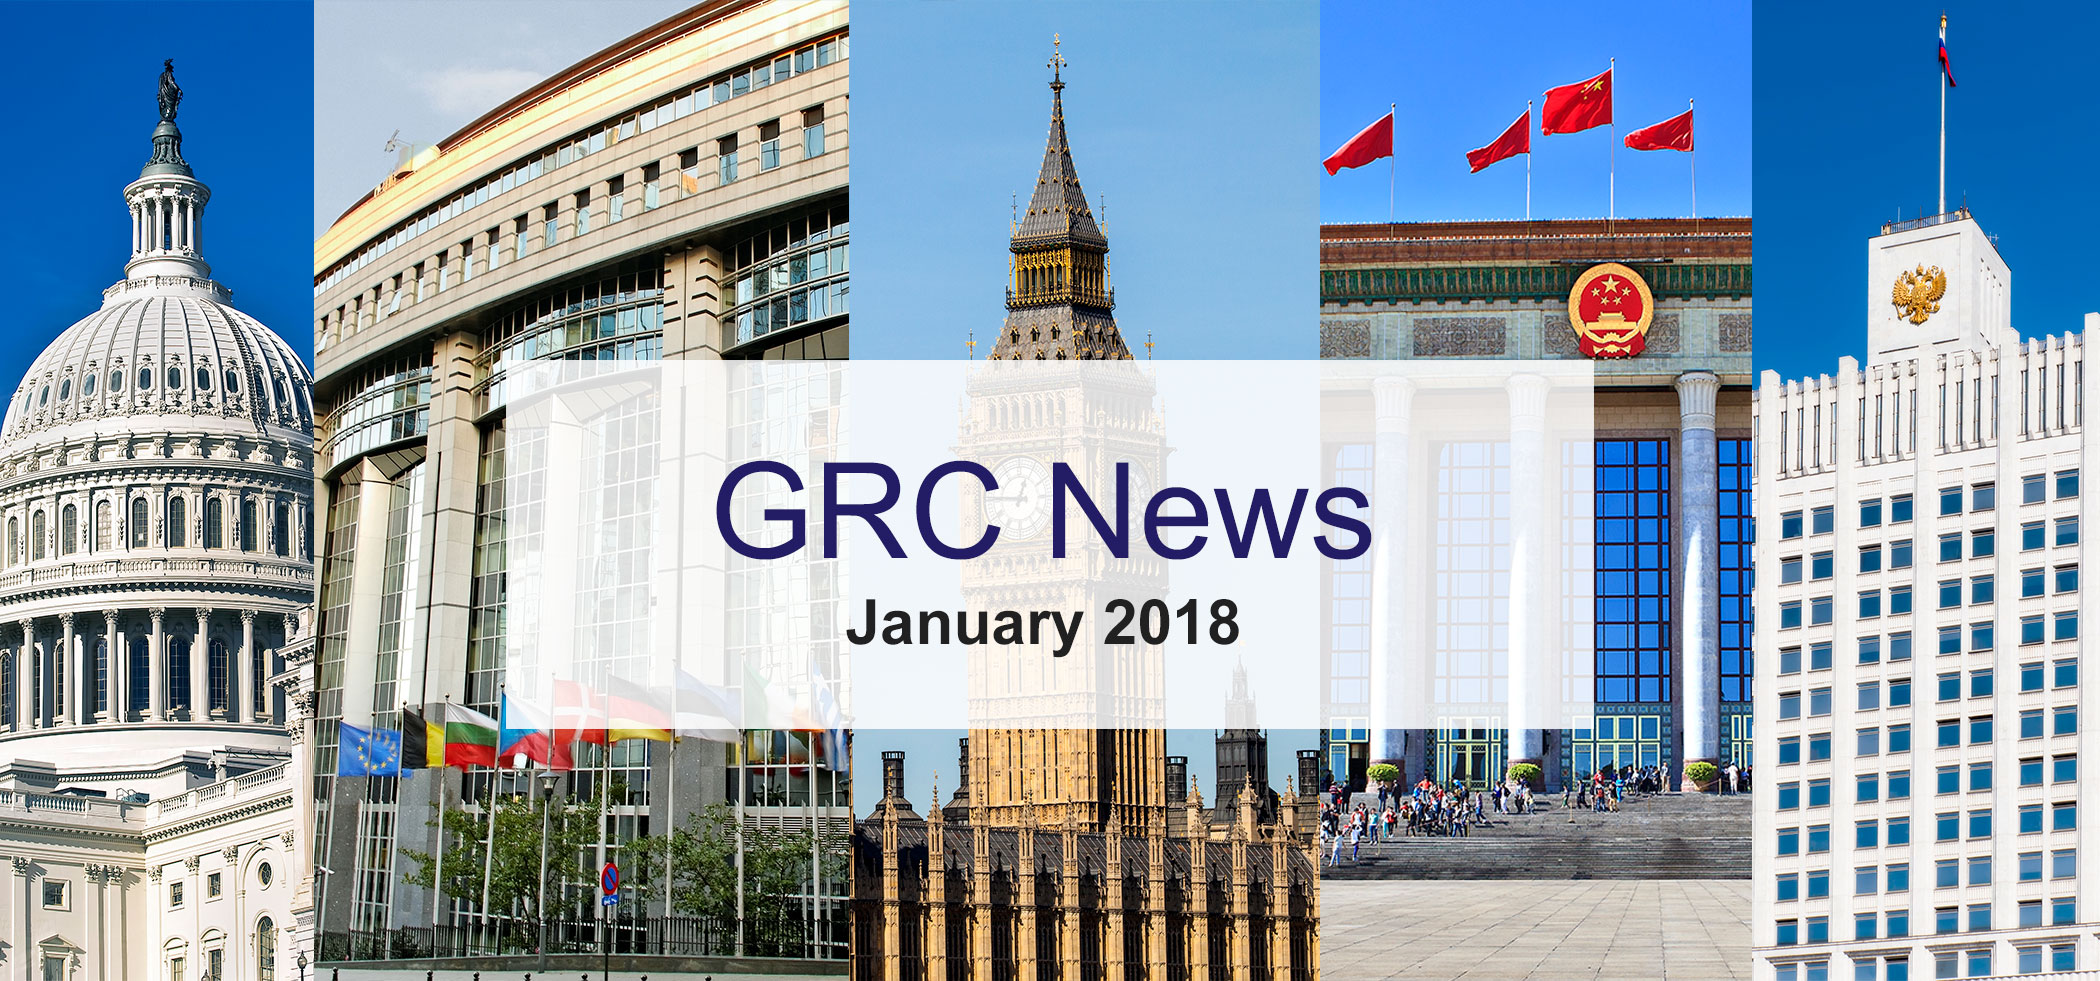 GRC-News-JAN2018